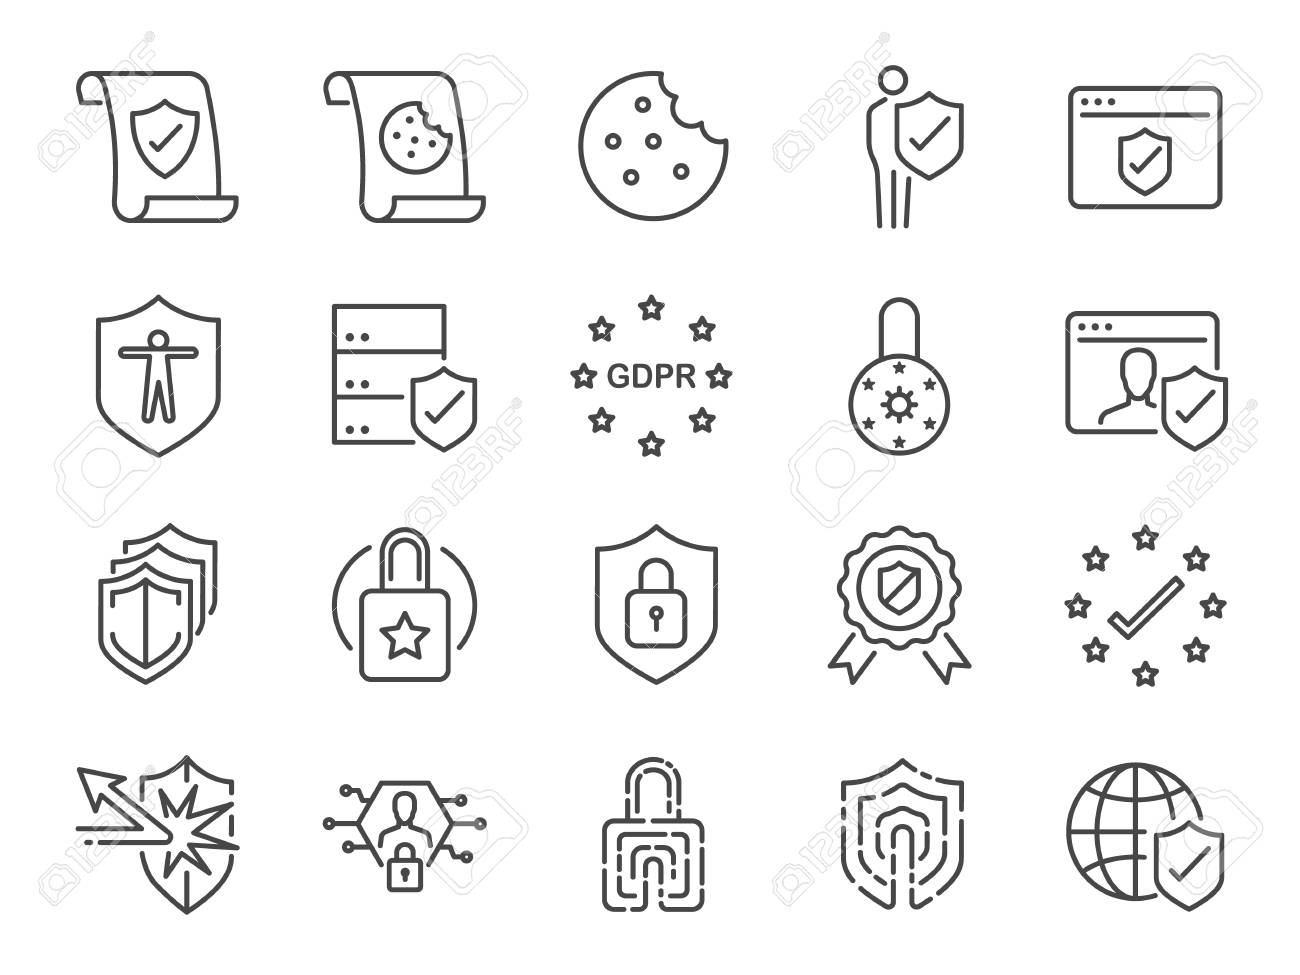 Privacy policy icon set. Included the icons as security information, GDPR, data protection, shield, cookies policy, compliant, personal data, padlock Vector illustration. - 99695703